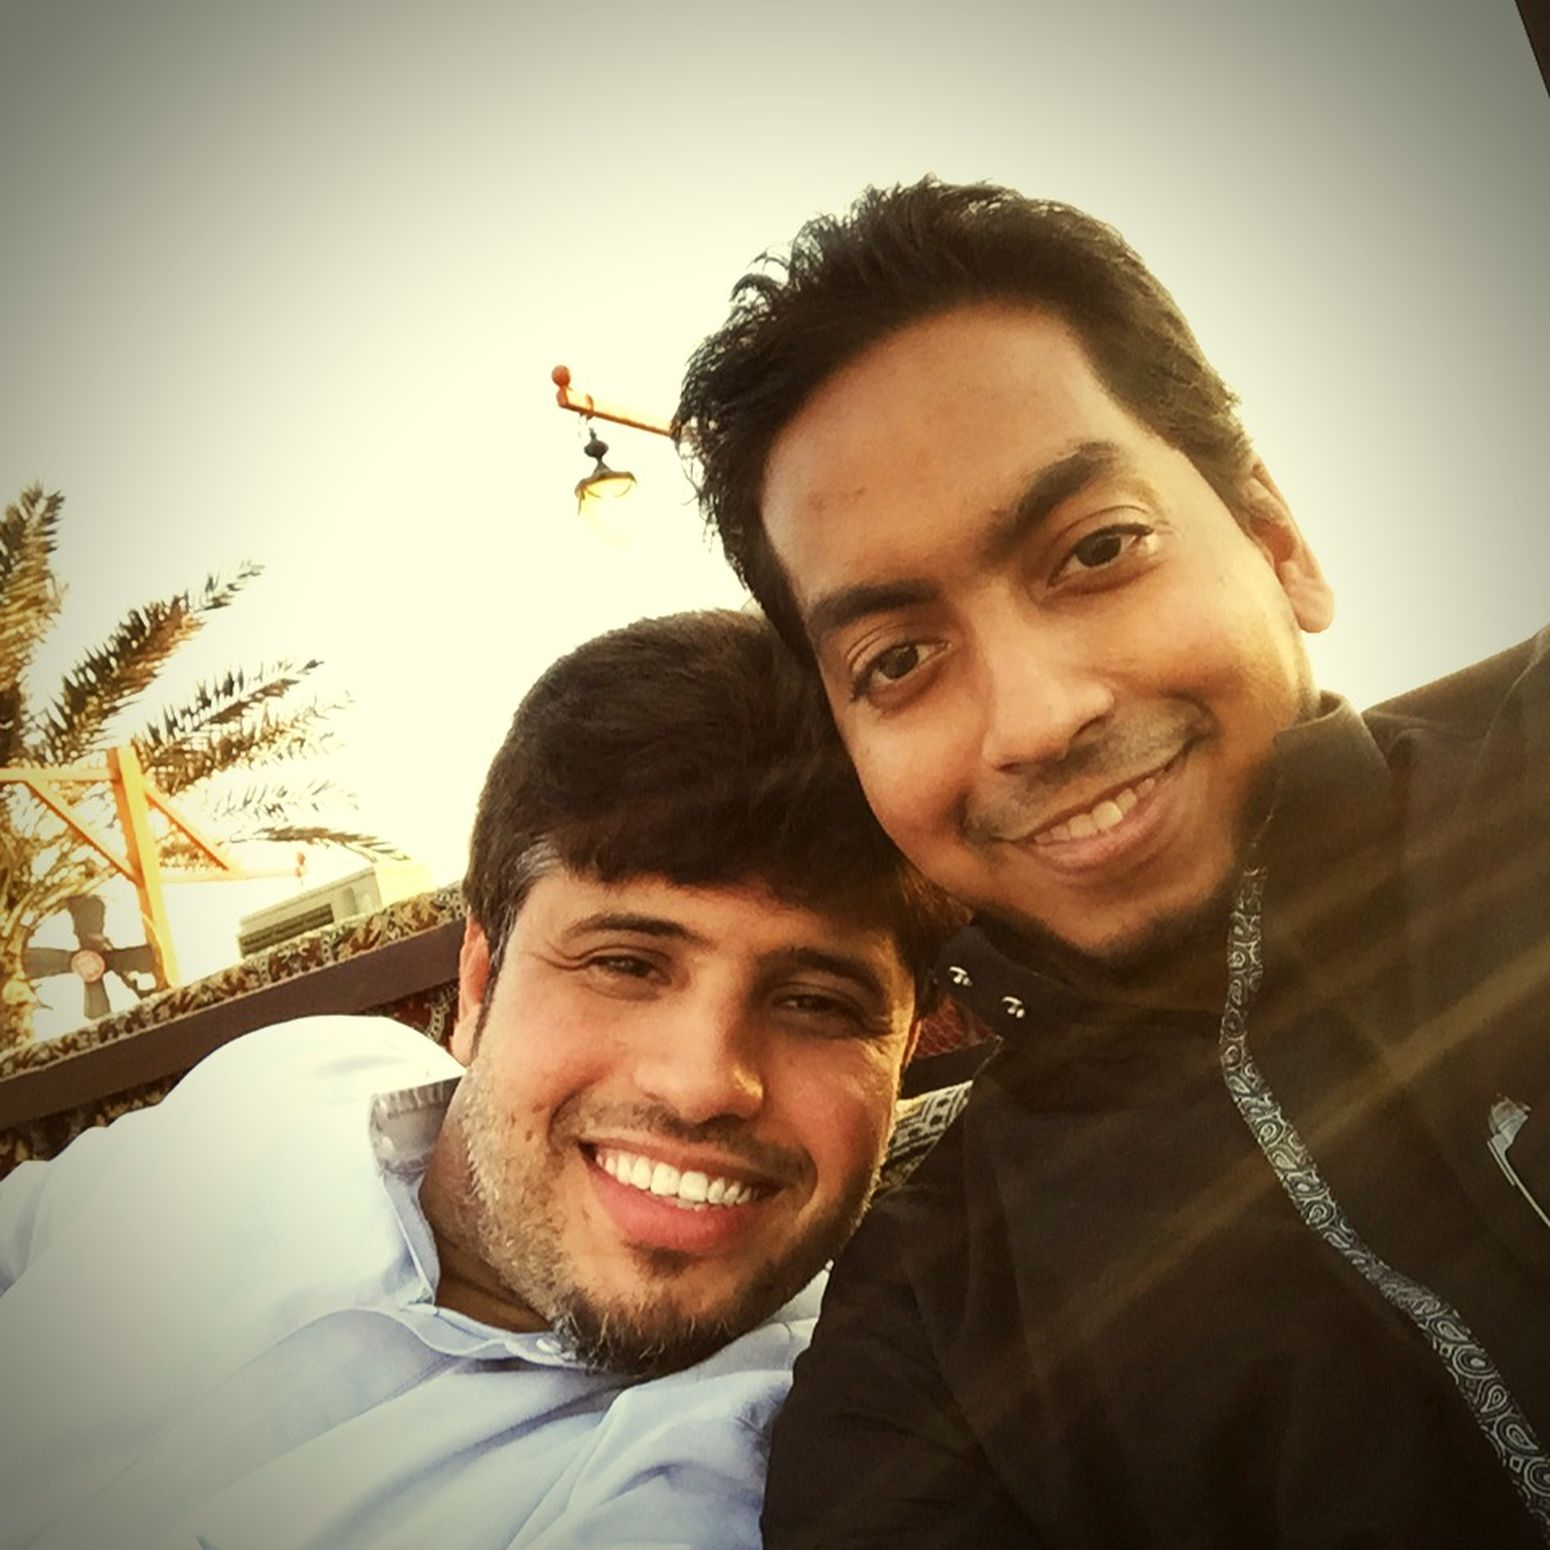 Hanging out Hanging Out Jeddah